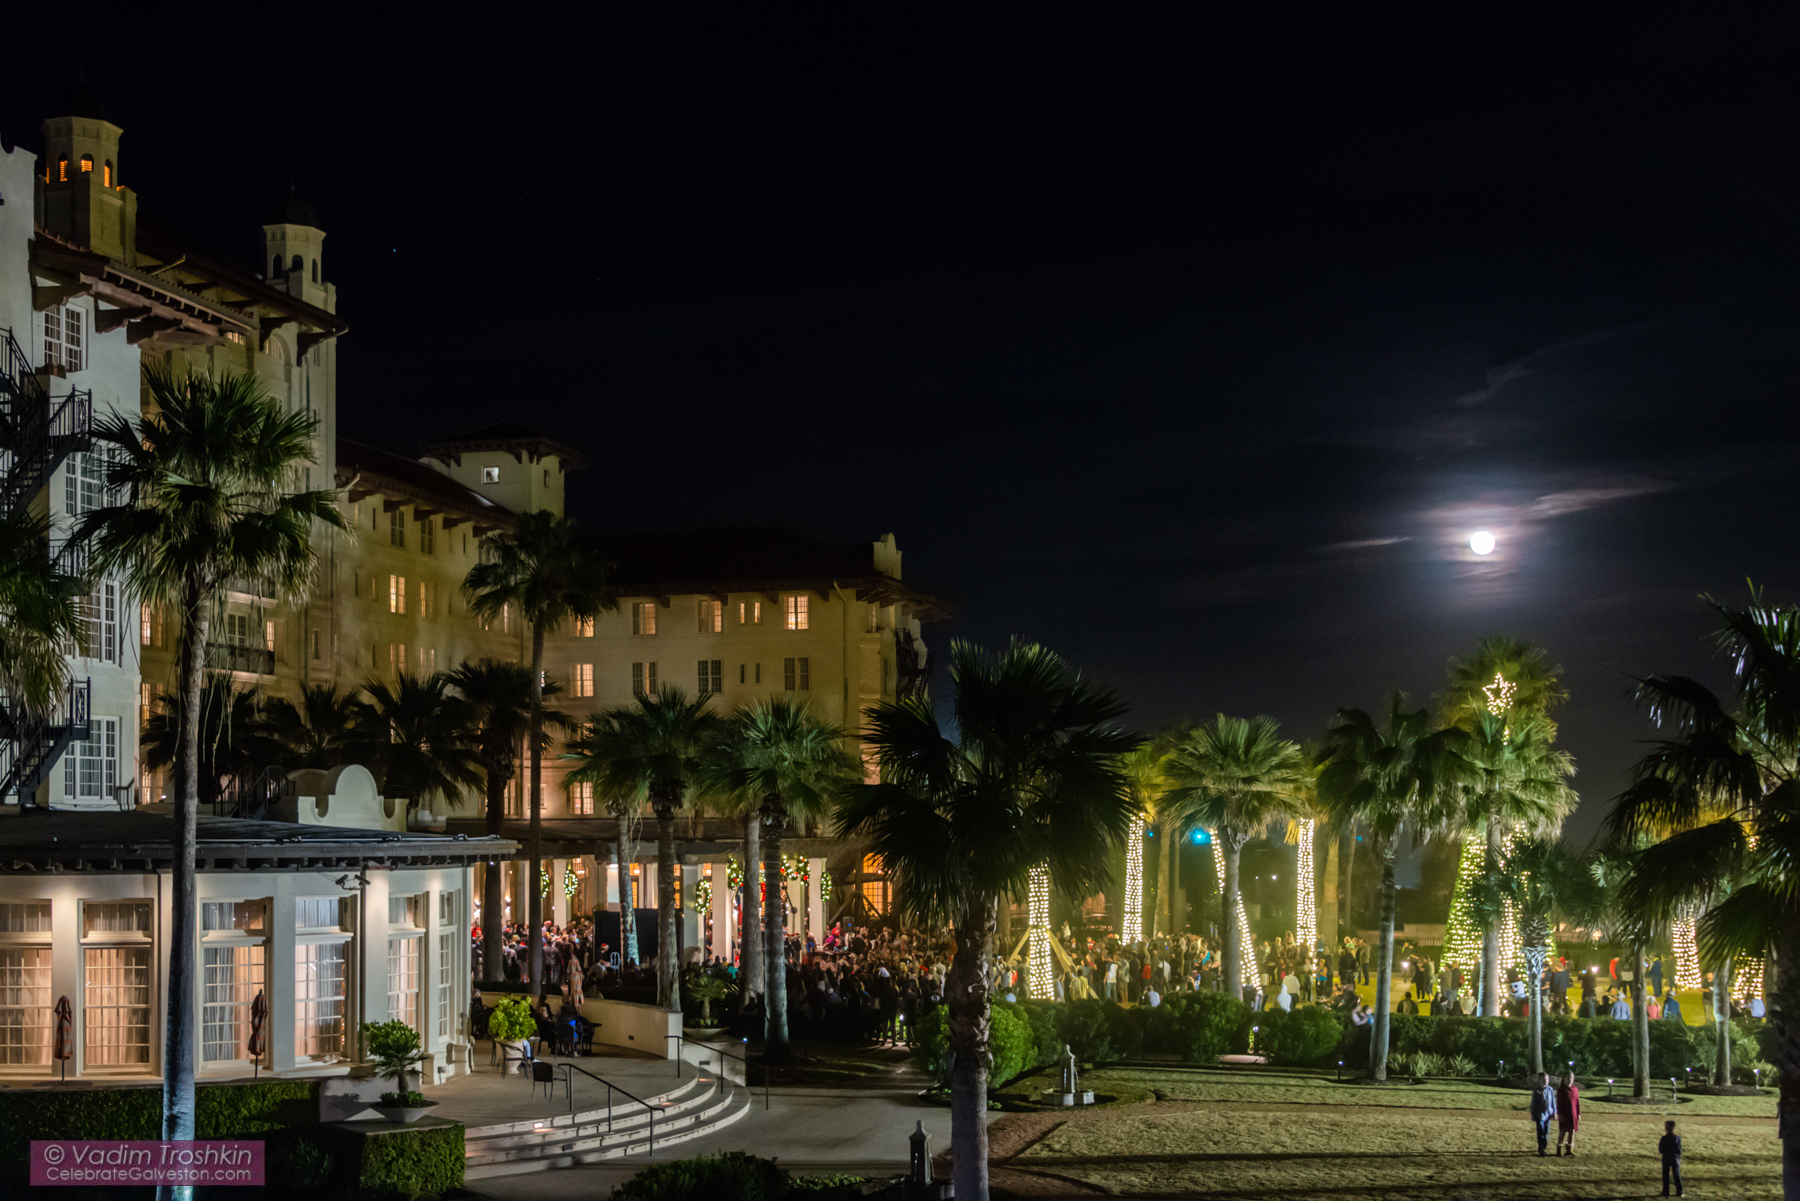 Galveston Holiday Lighting Celebration